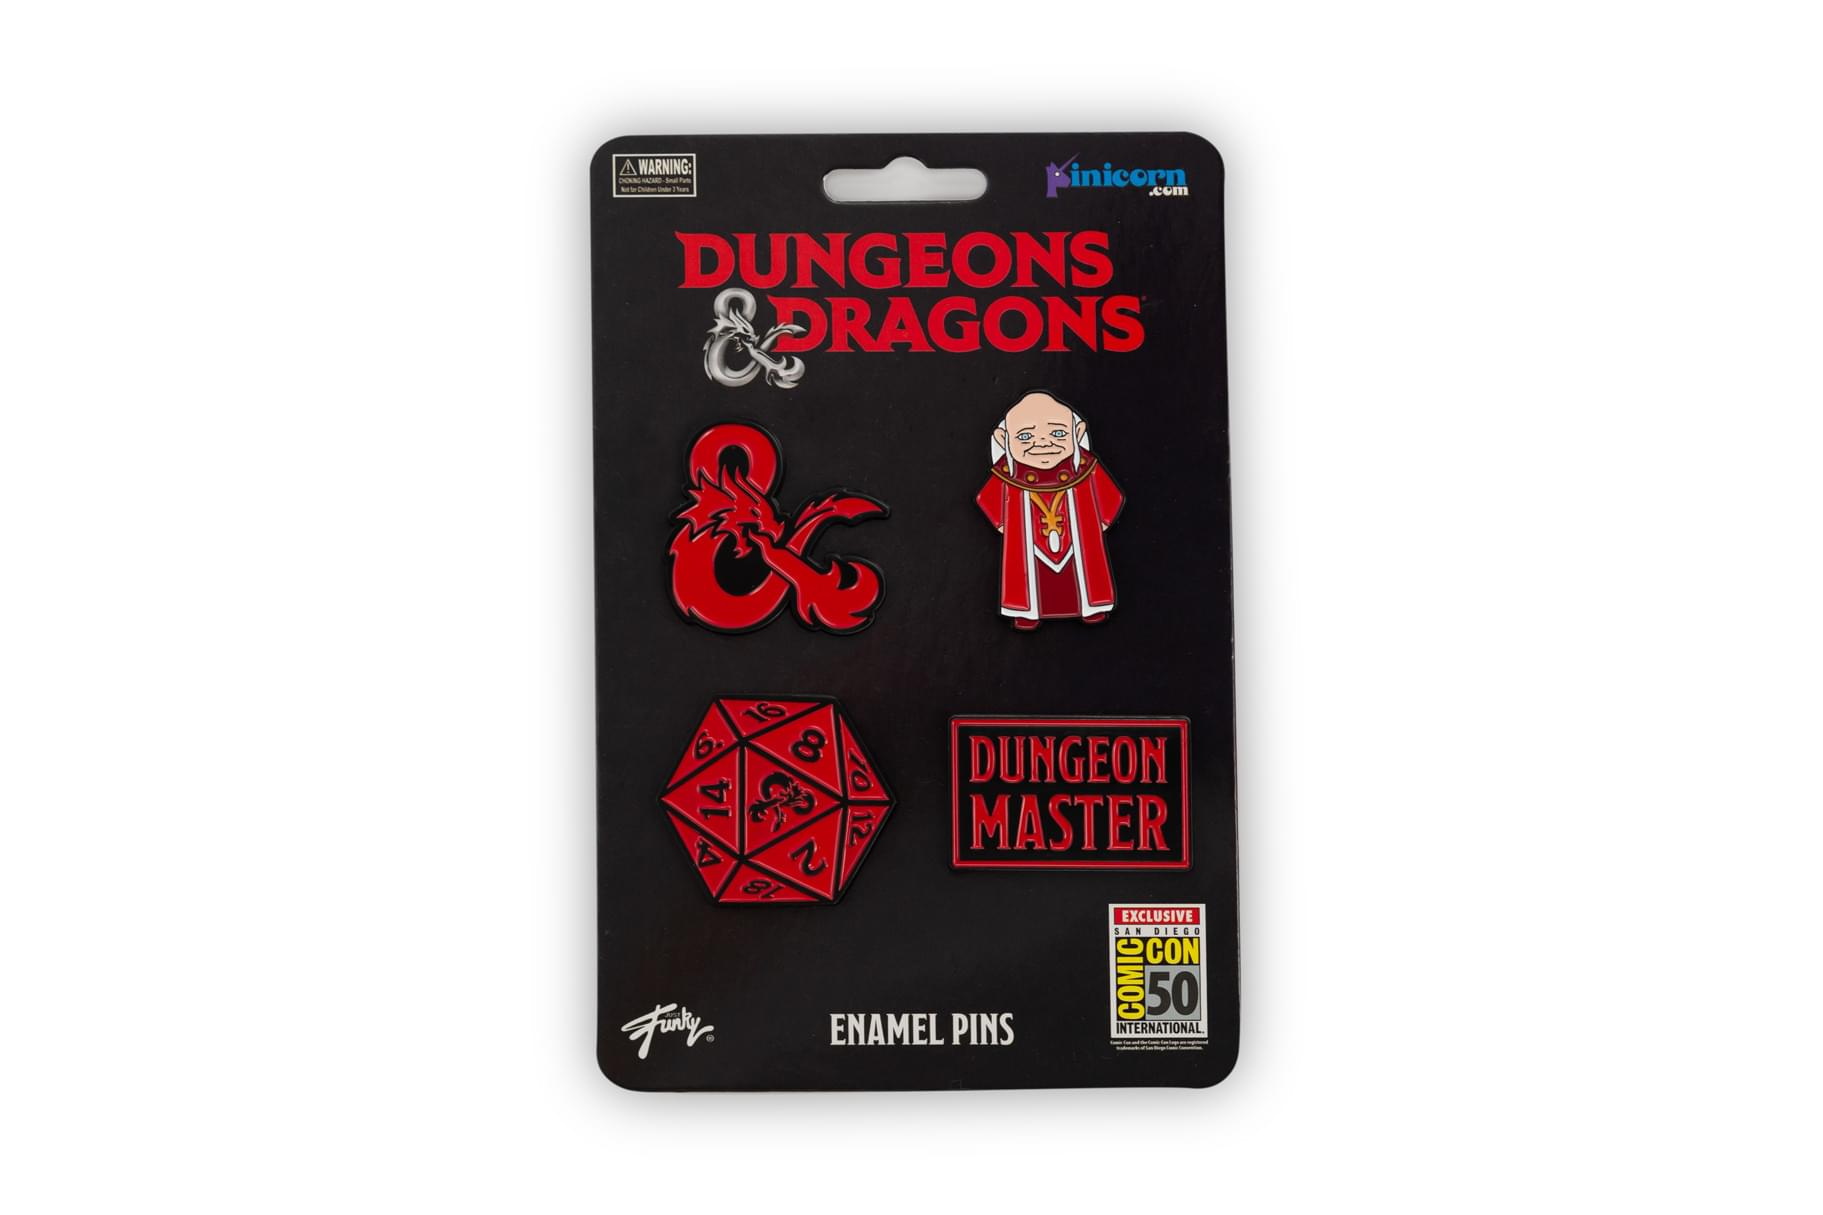 Dungeons & Dragons Enamel Pin Set | Exclusive Collectors Series Pins | Set of 4